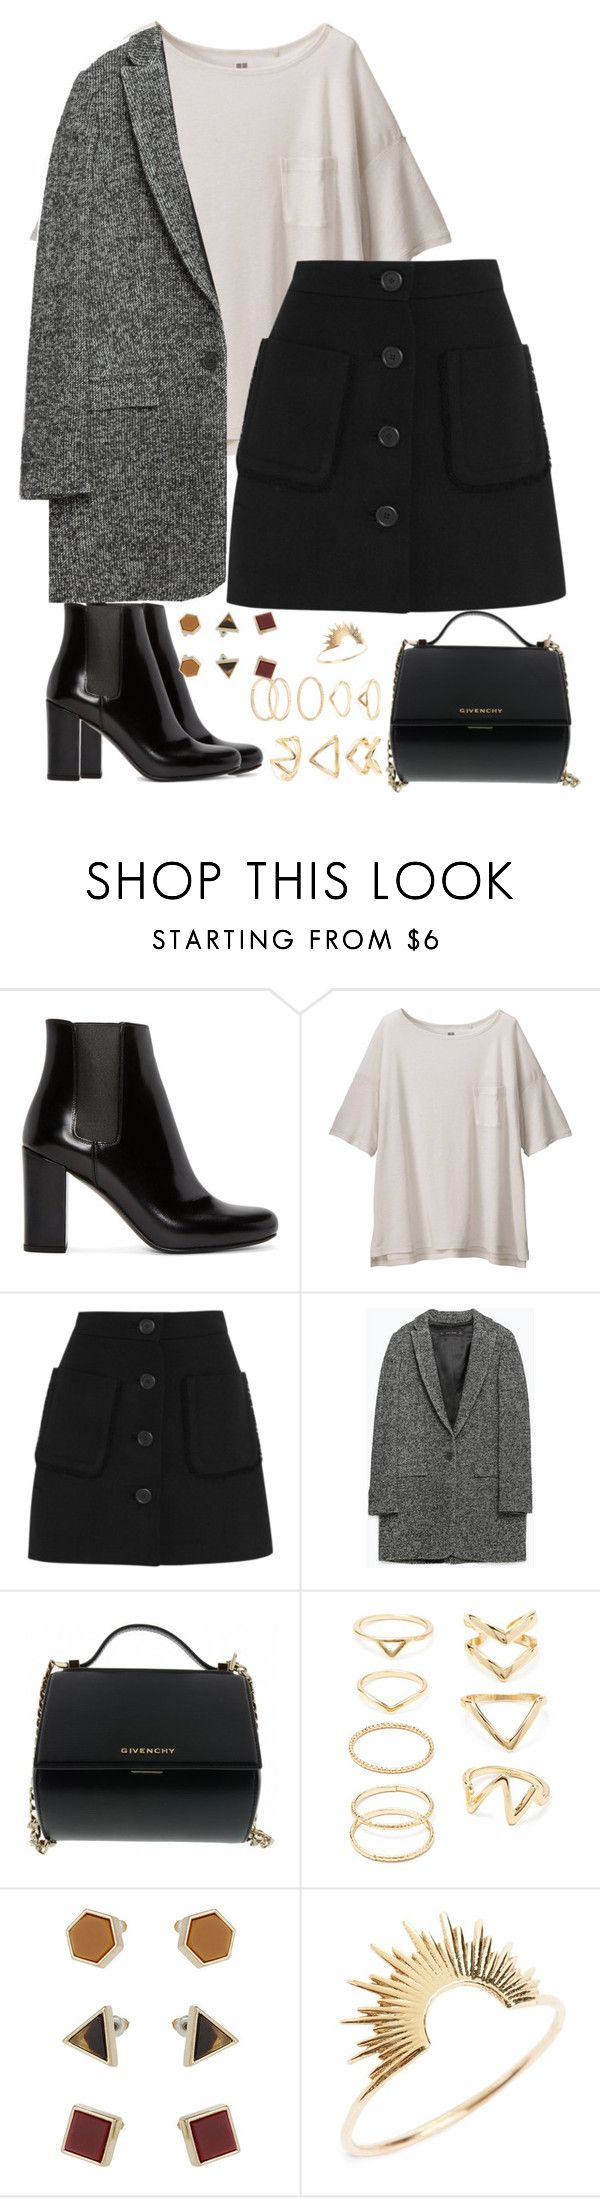 """Untitled #1755"" by itsmeischoice on Polyvore featuring Yves Saint Laurent, Uniqlo, Miu Miu, Zara, Givenchy, Forever 21, Topshop, Sarah & Sebastian, women's clothing and women's fashion"